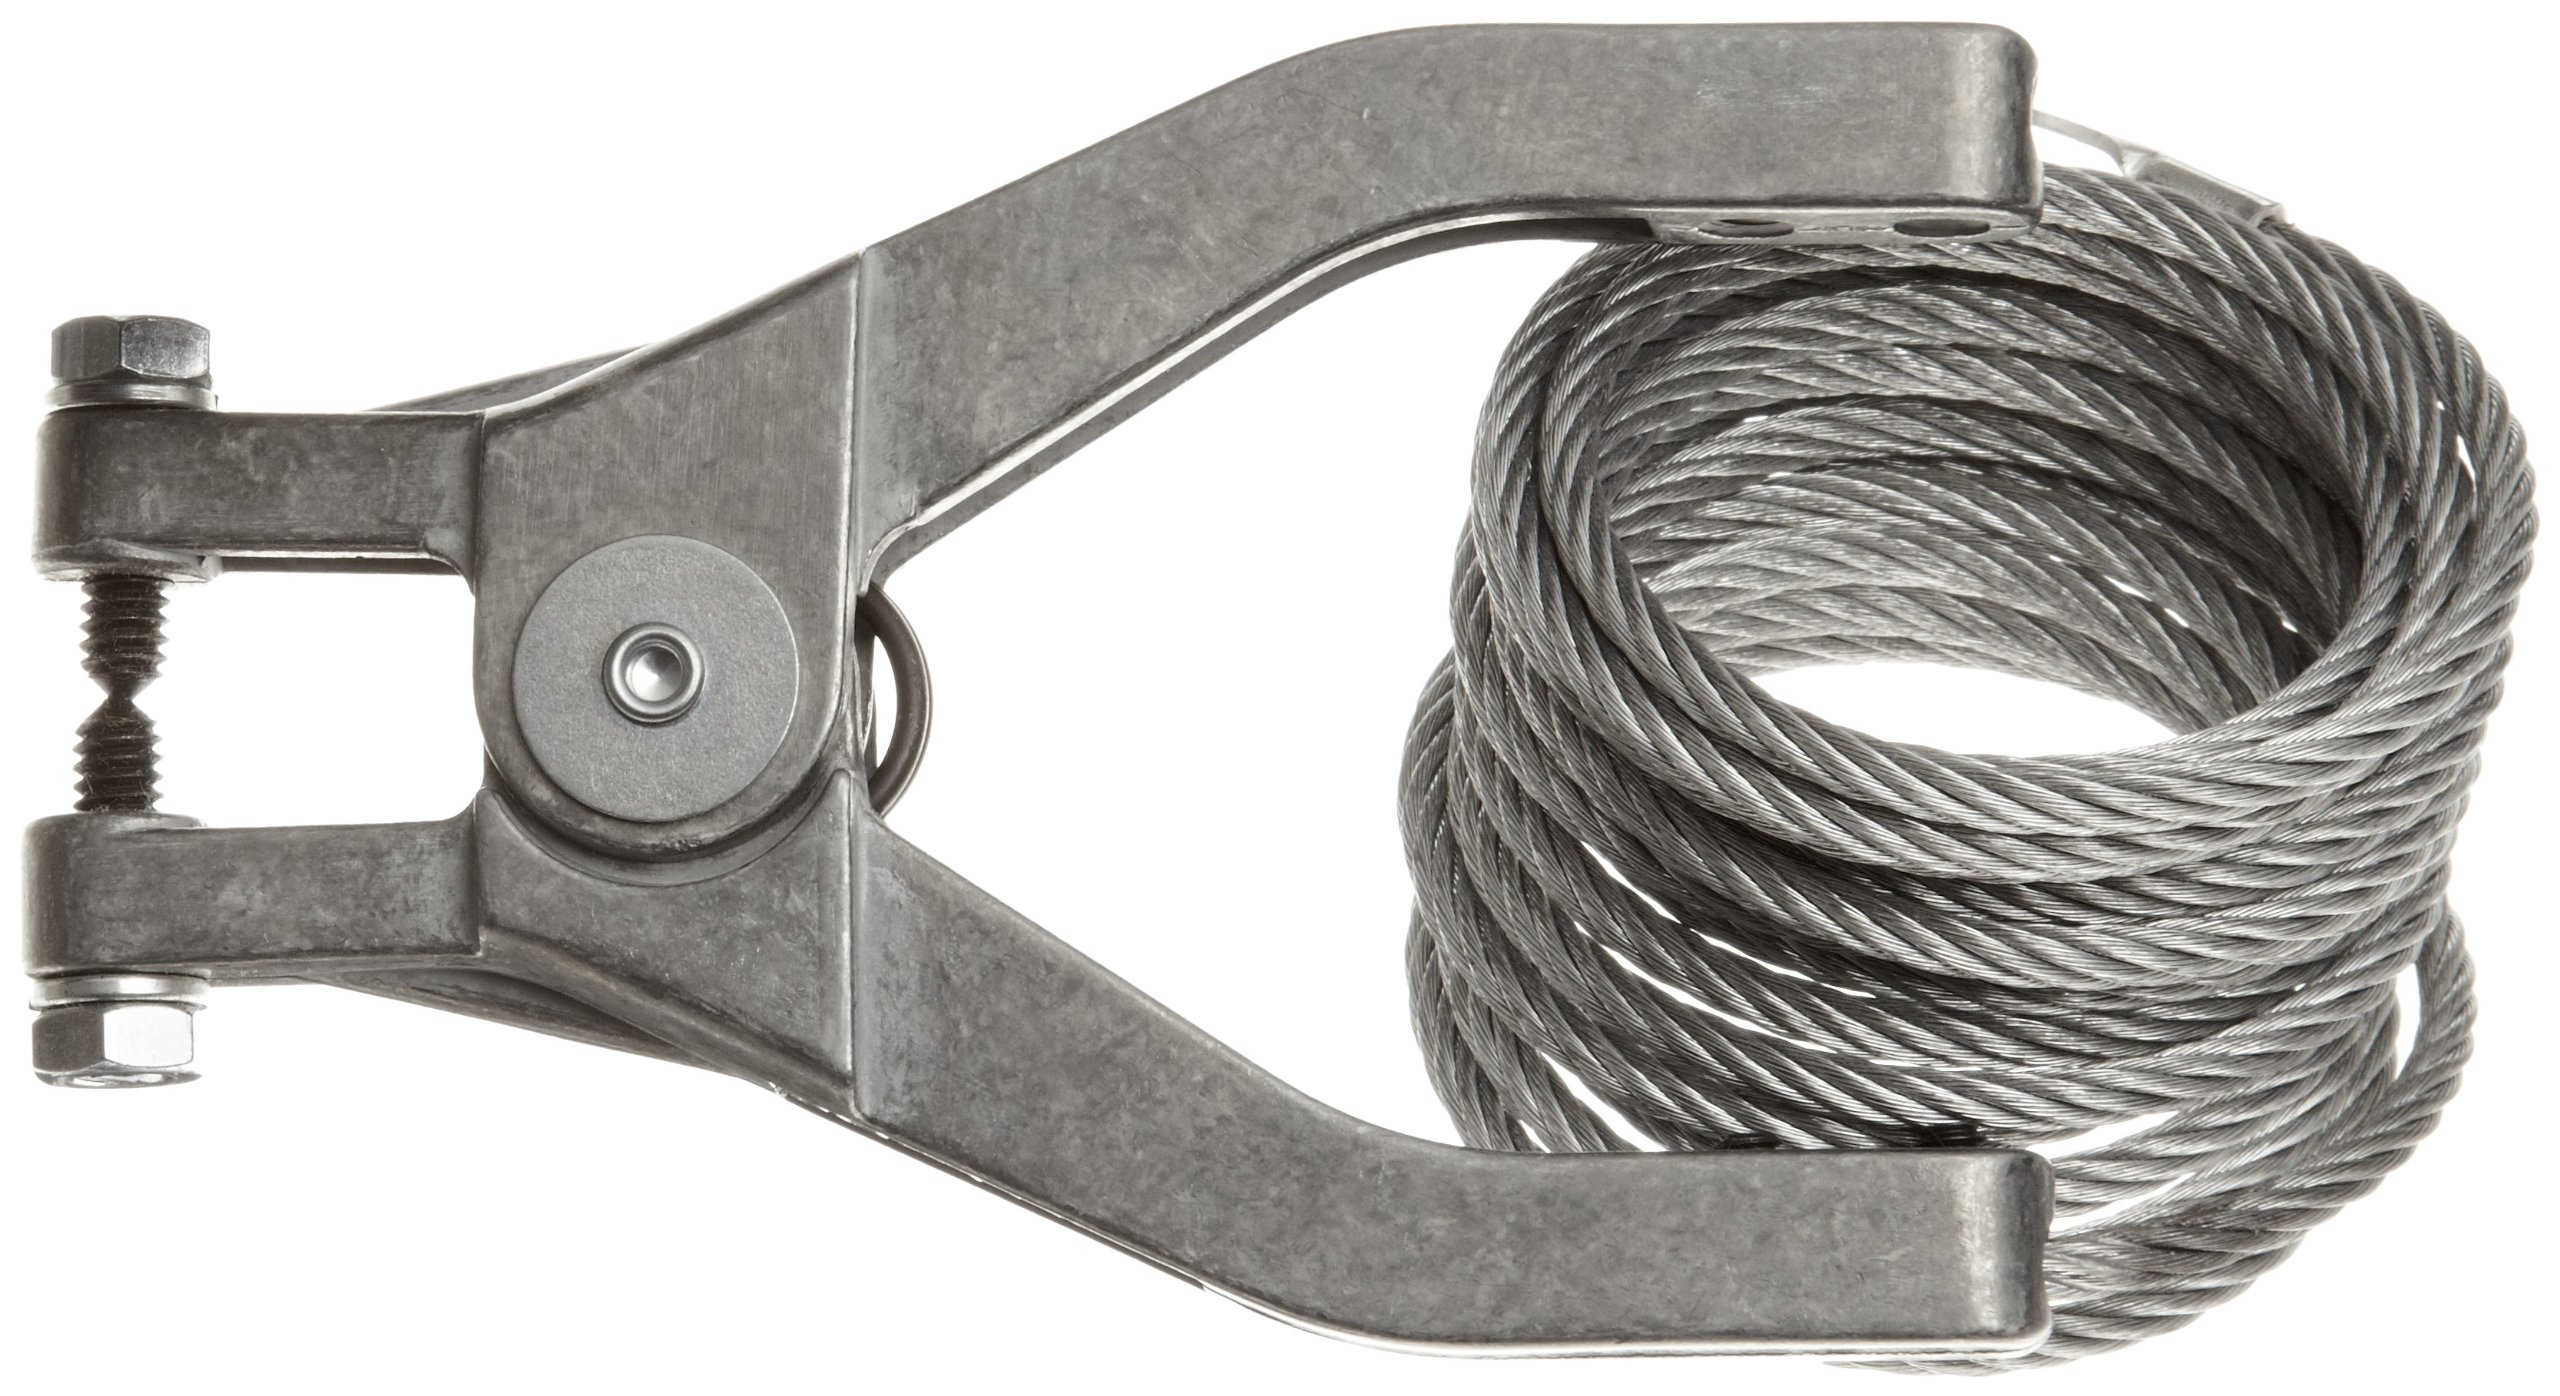 Justrite 08496 10' Long Flex Wire With Hand Clamp And 1/4'' Terminal